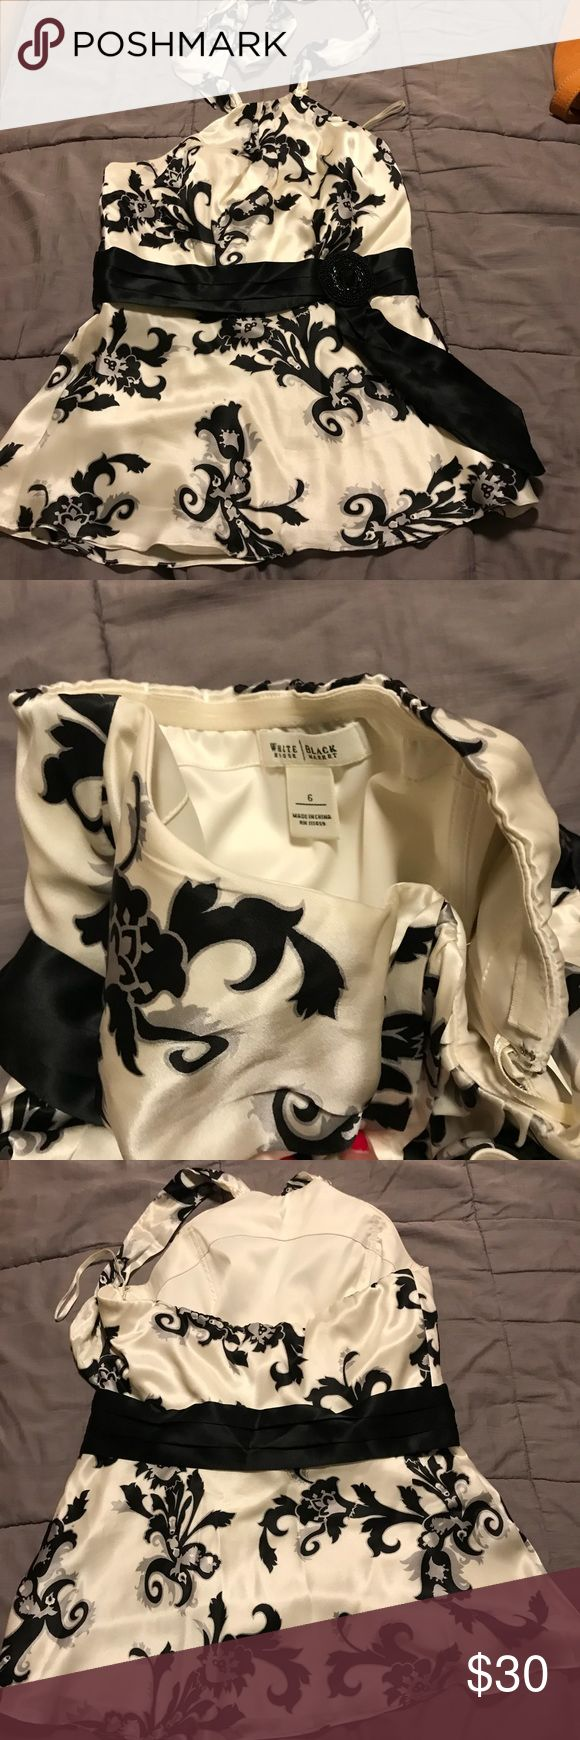 Black house white market Dressy top Black and white dressy top from black house white market. Has  A halter style top with silky material and some underwire lining built in. White House Black Market Tops Blouses